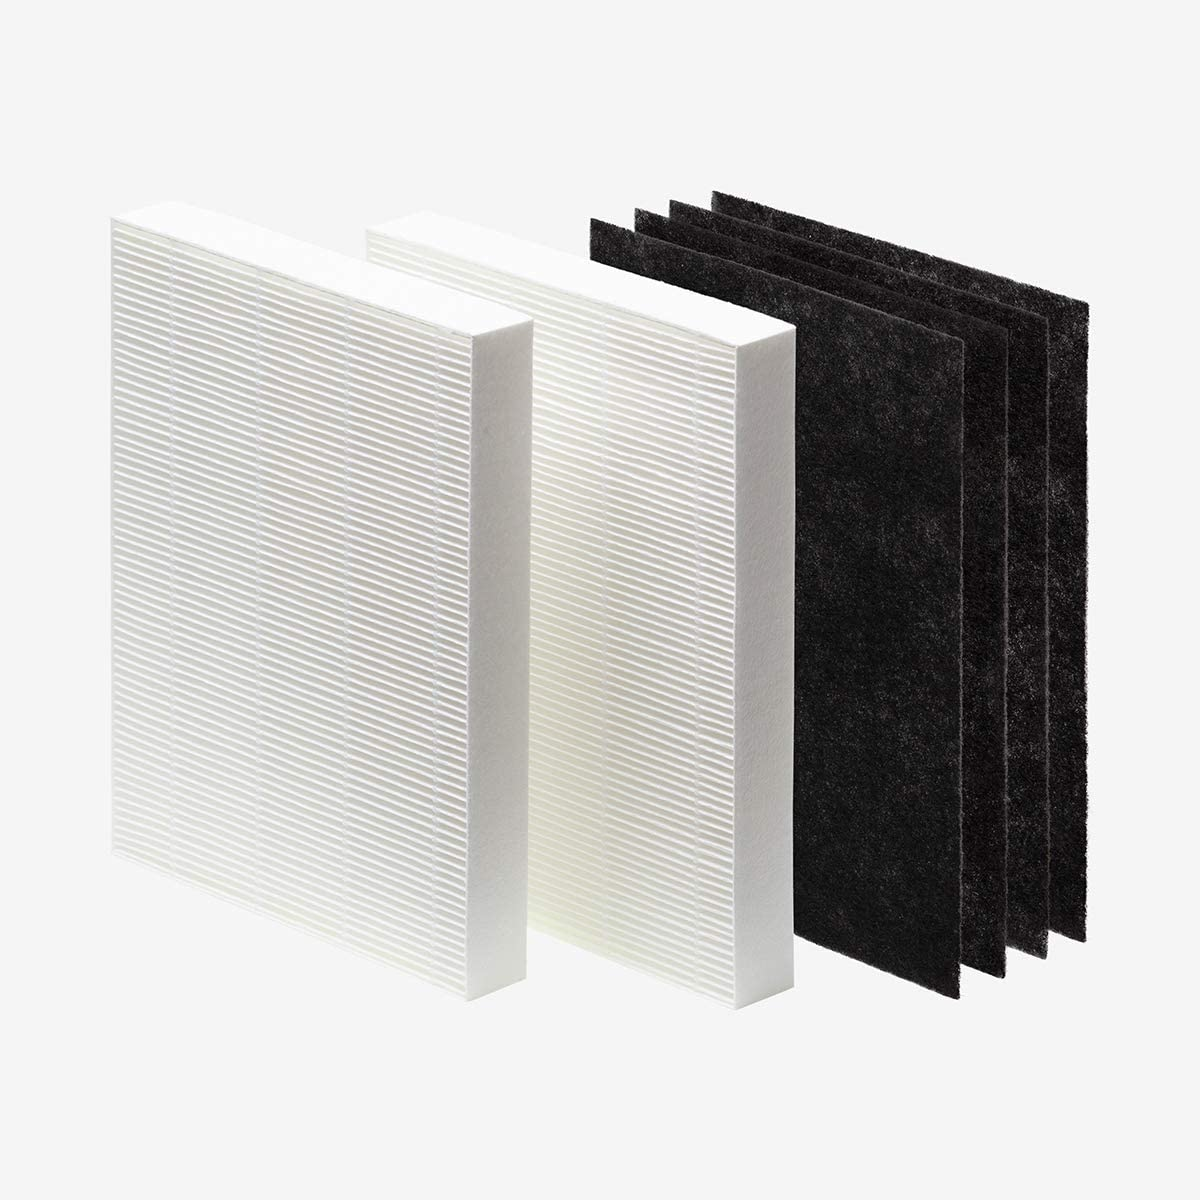 All items in the store Coway Directly managed store AP-1216-FP Replacement Filter Pack for AP-1216L